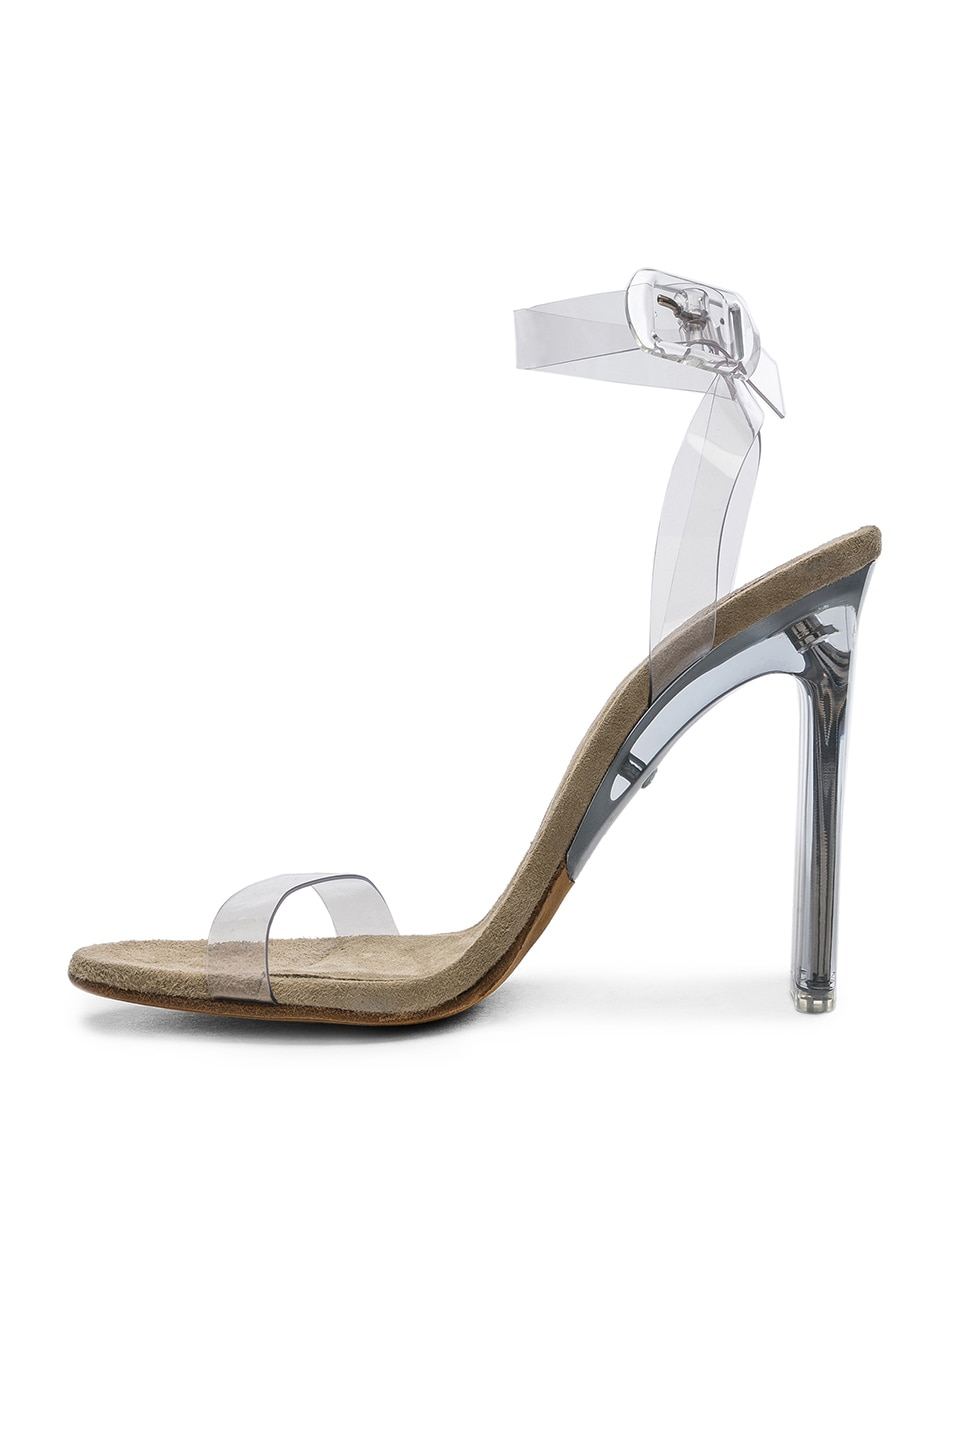 0ad58c767 Image 5 of YEEZY Season 6 Ankle Strap PVC Heels in Clear